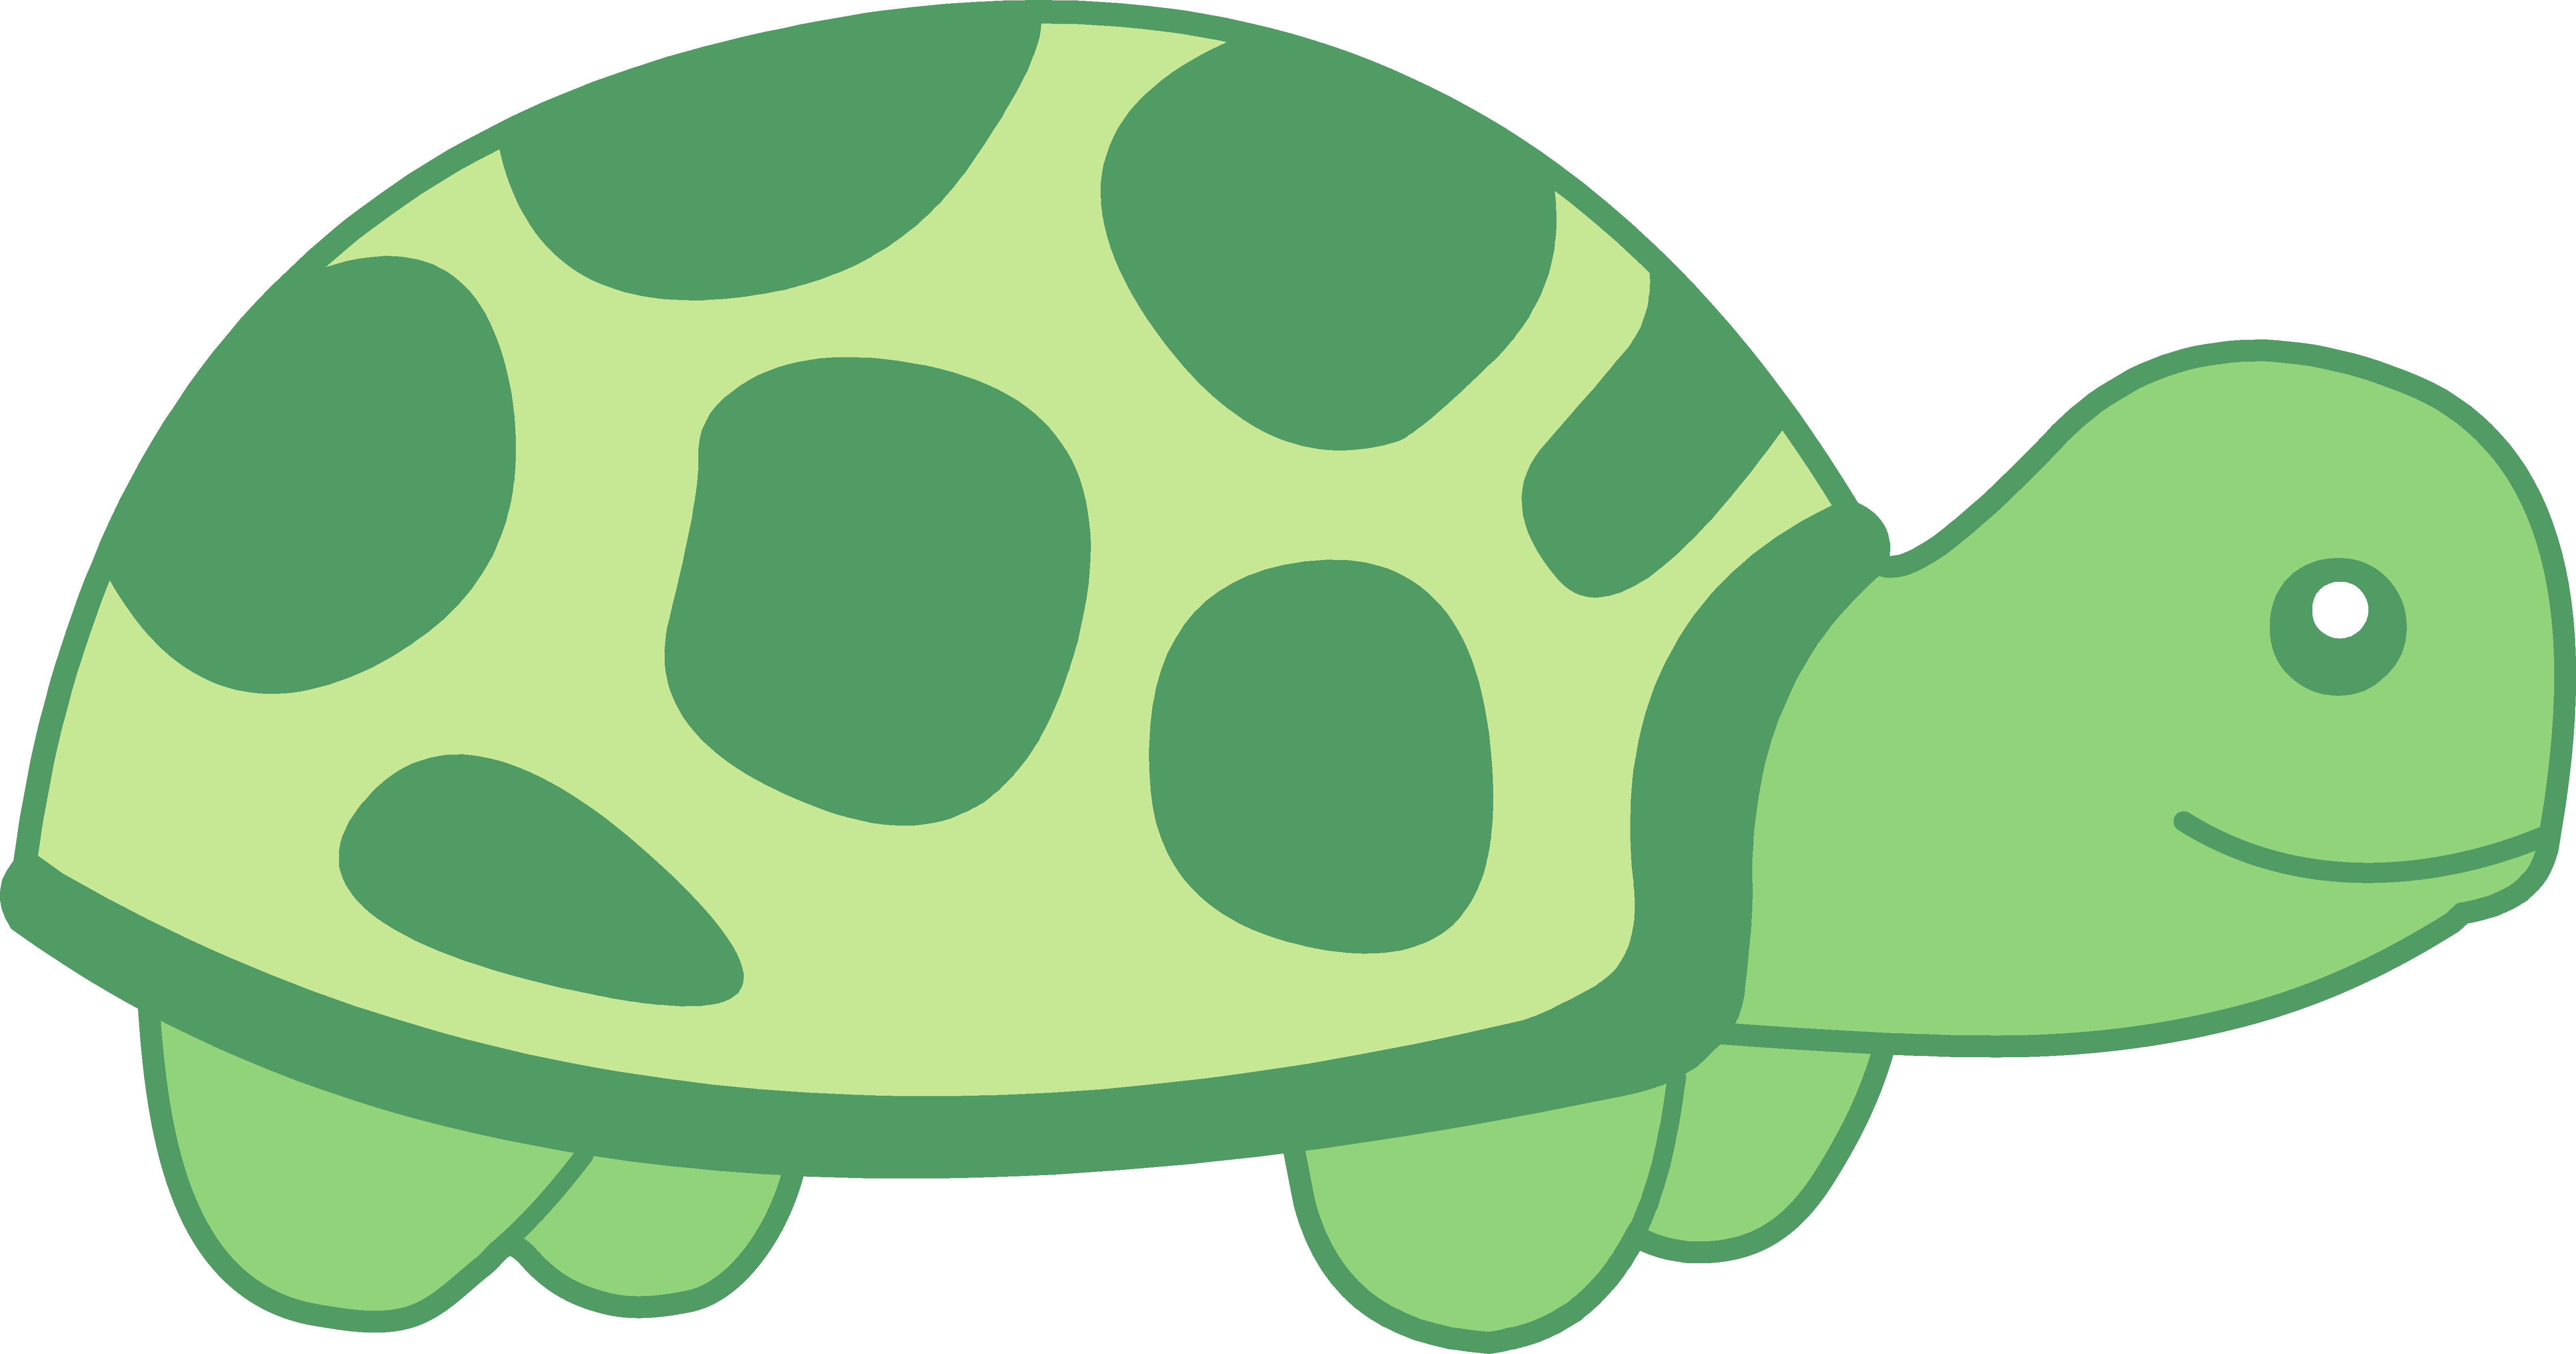 Little green turtle design. Turtles clipart graphic free download